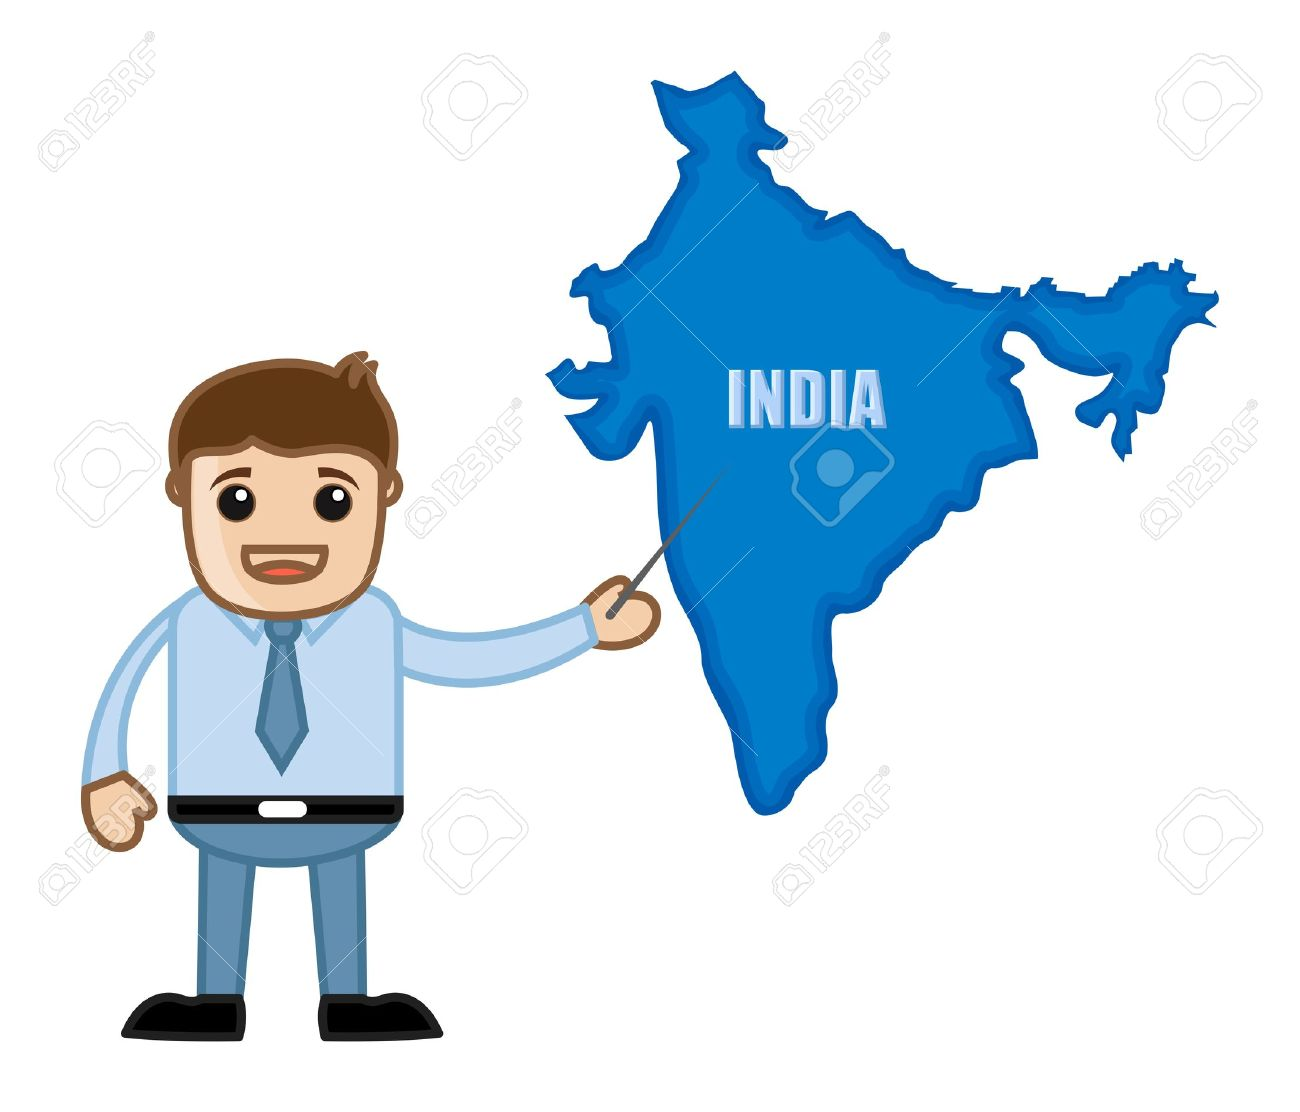 Showing india map business office cartoon character royalty free showing india map business office cartoon character stock vector 21280447 gumiabroncs Images